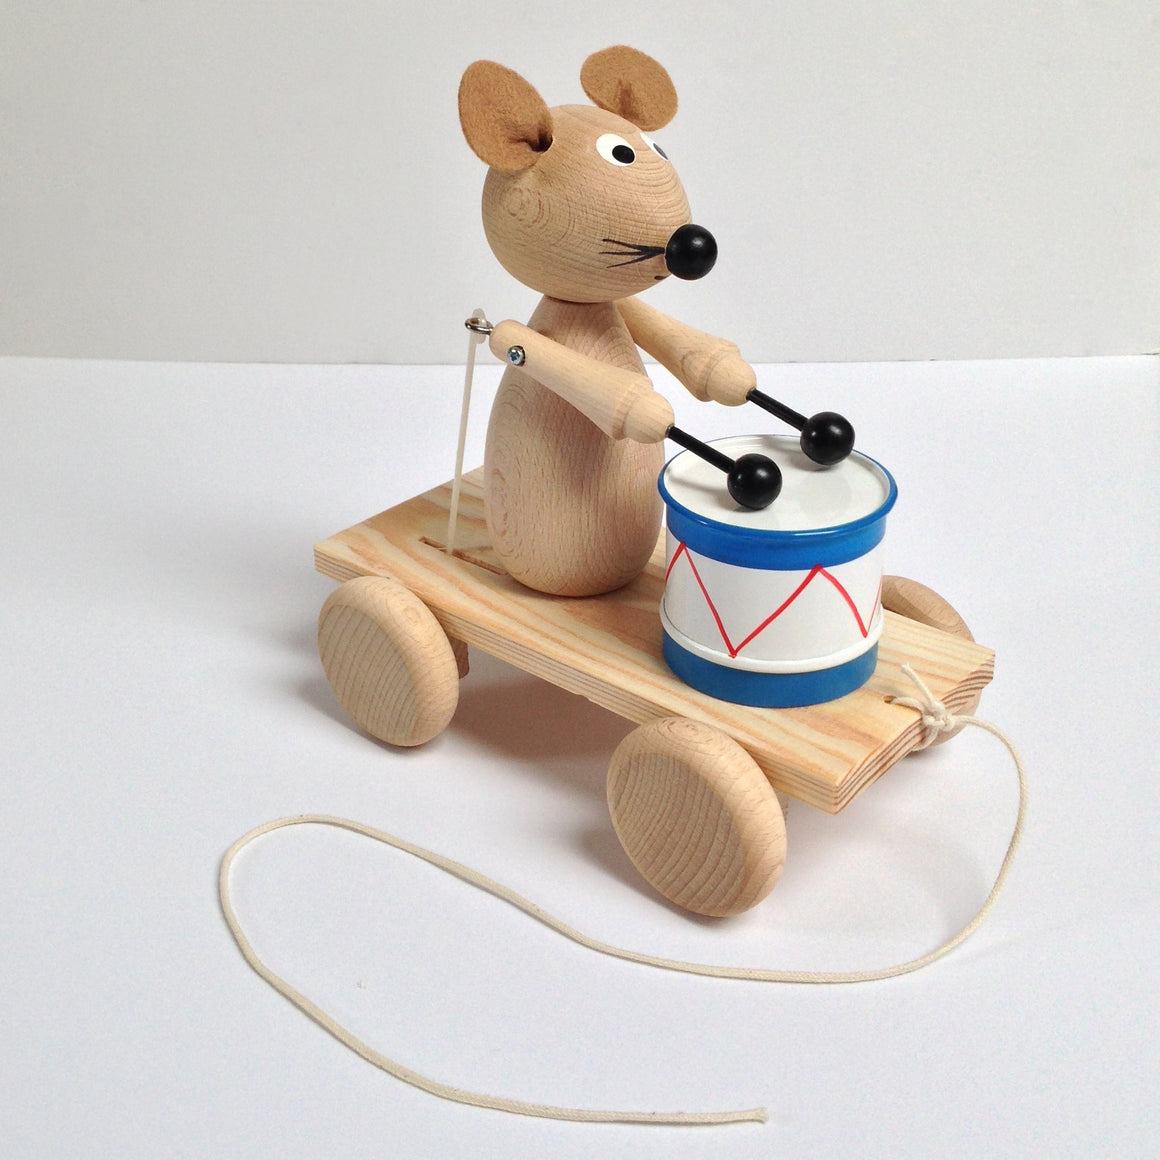 WOODEN DRUMMING PULL ALONG MOUSE